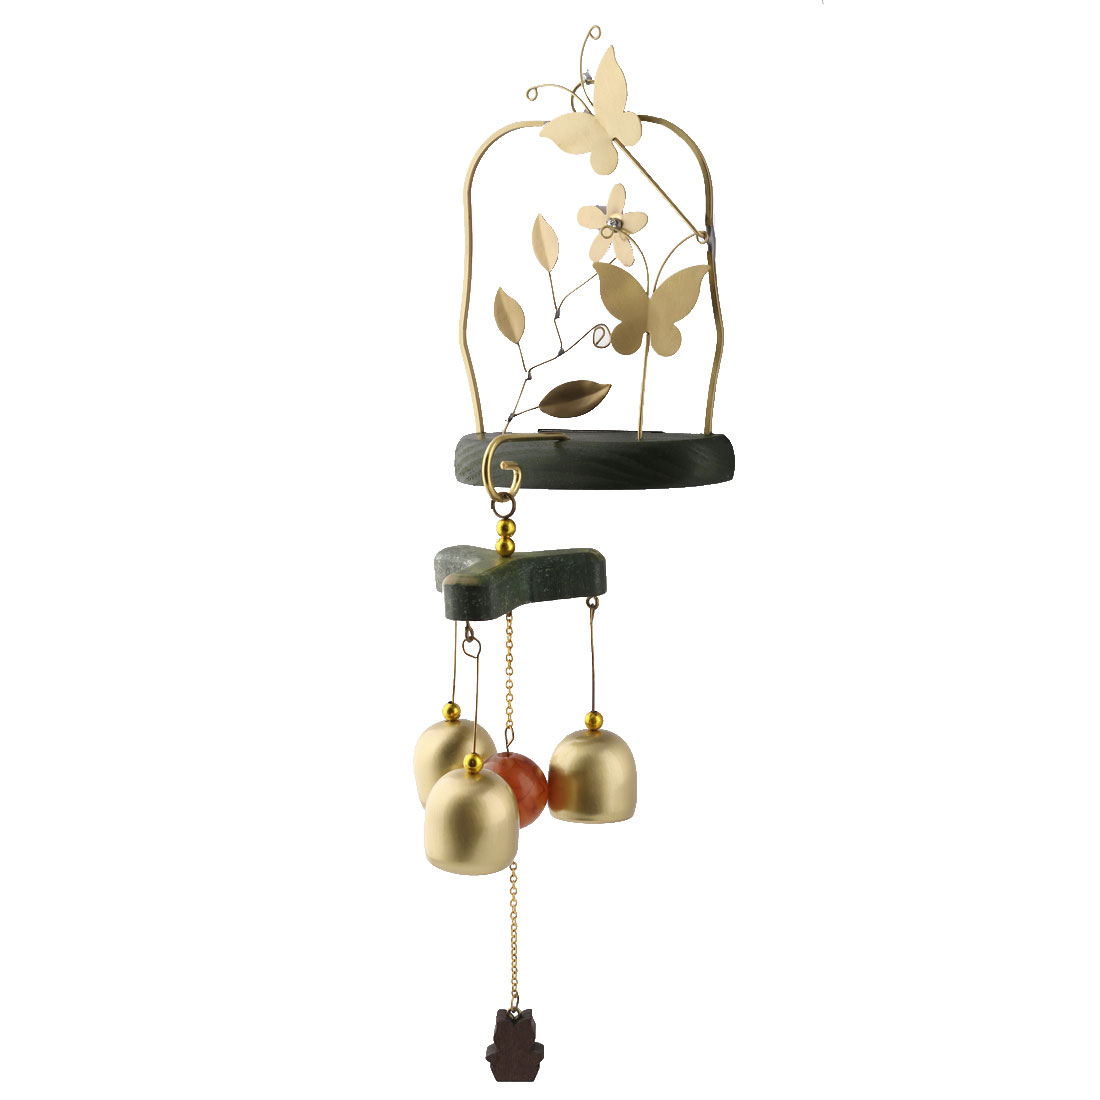 Living Room Self Adhesive Hook Birthday Gift Hanging Wind Bell Chime Windbell